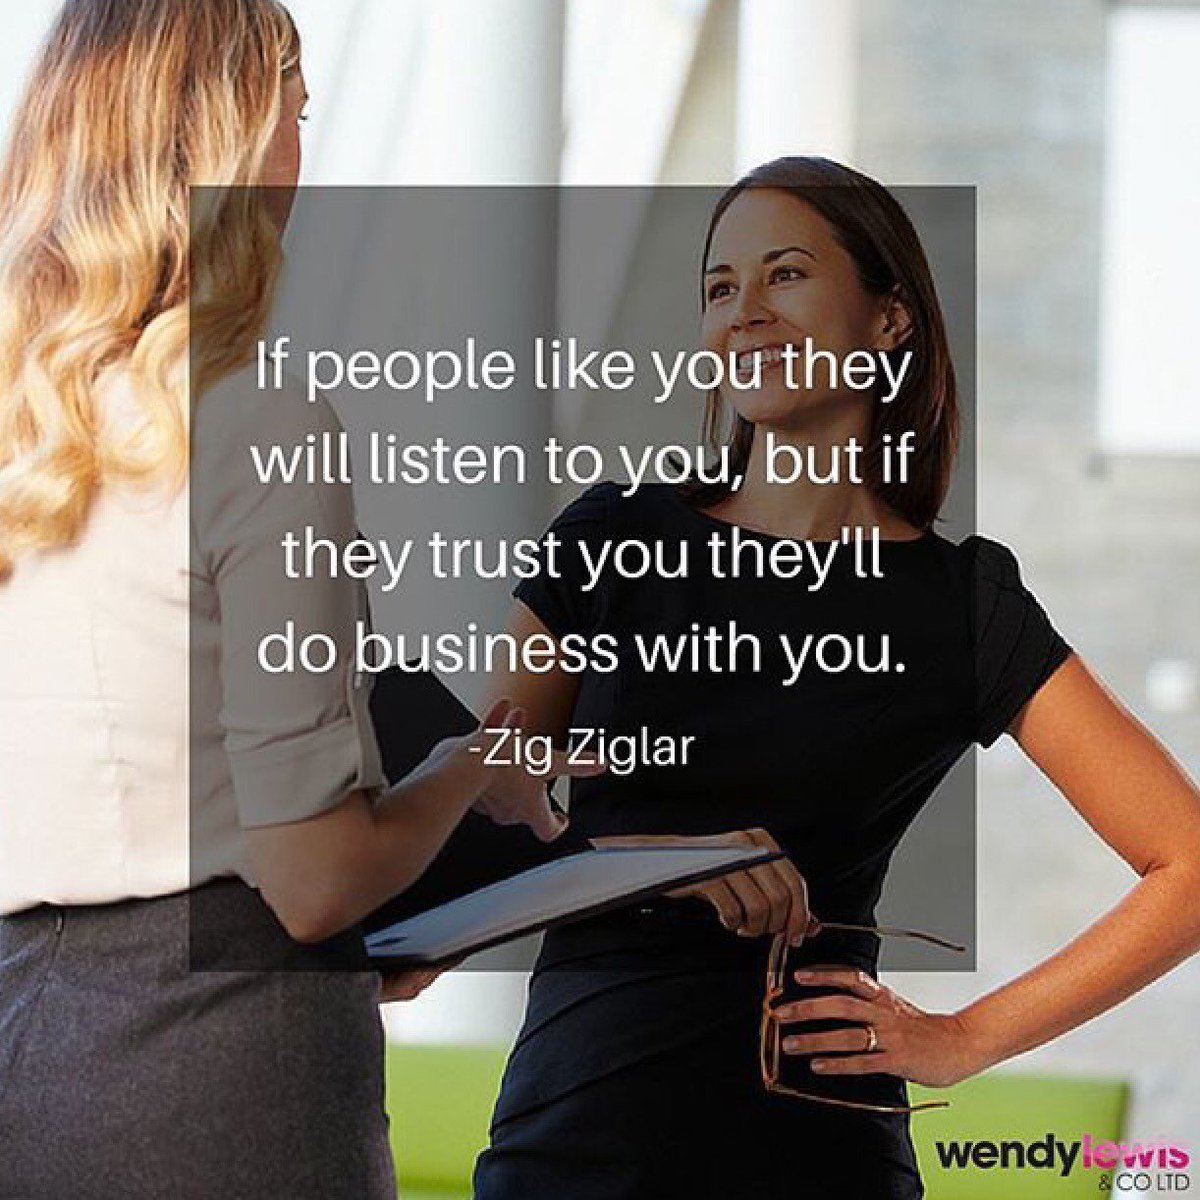 If you've got trust, you've got everything. #QOTD #MondayMotivation